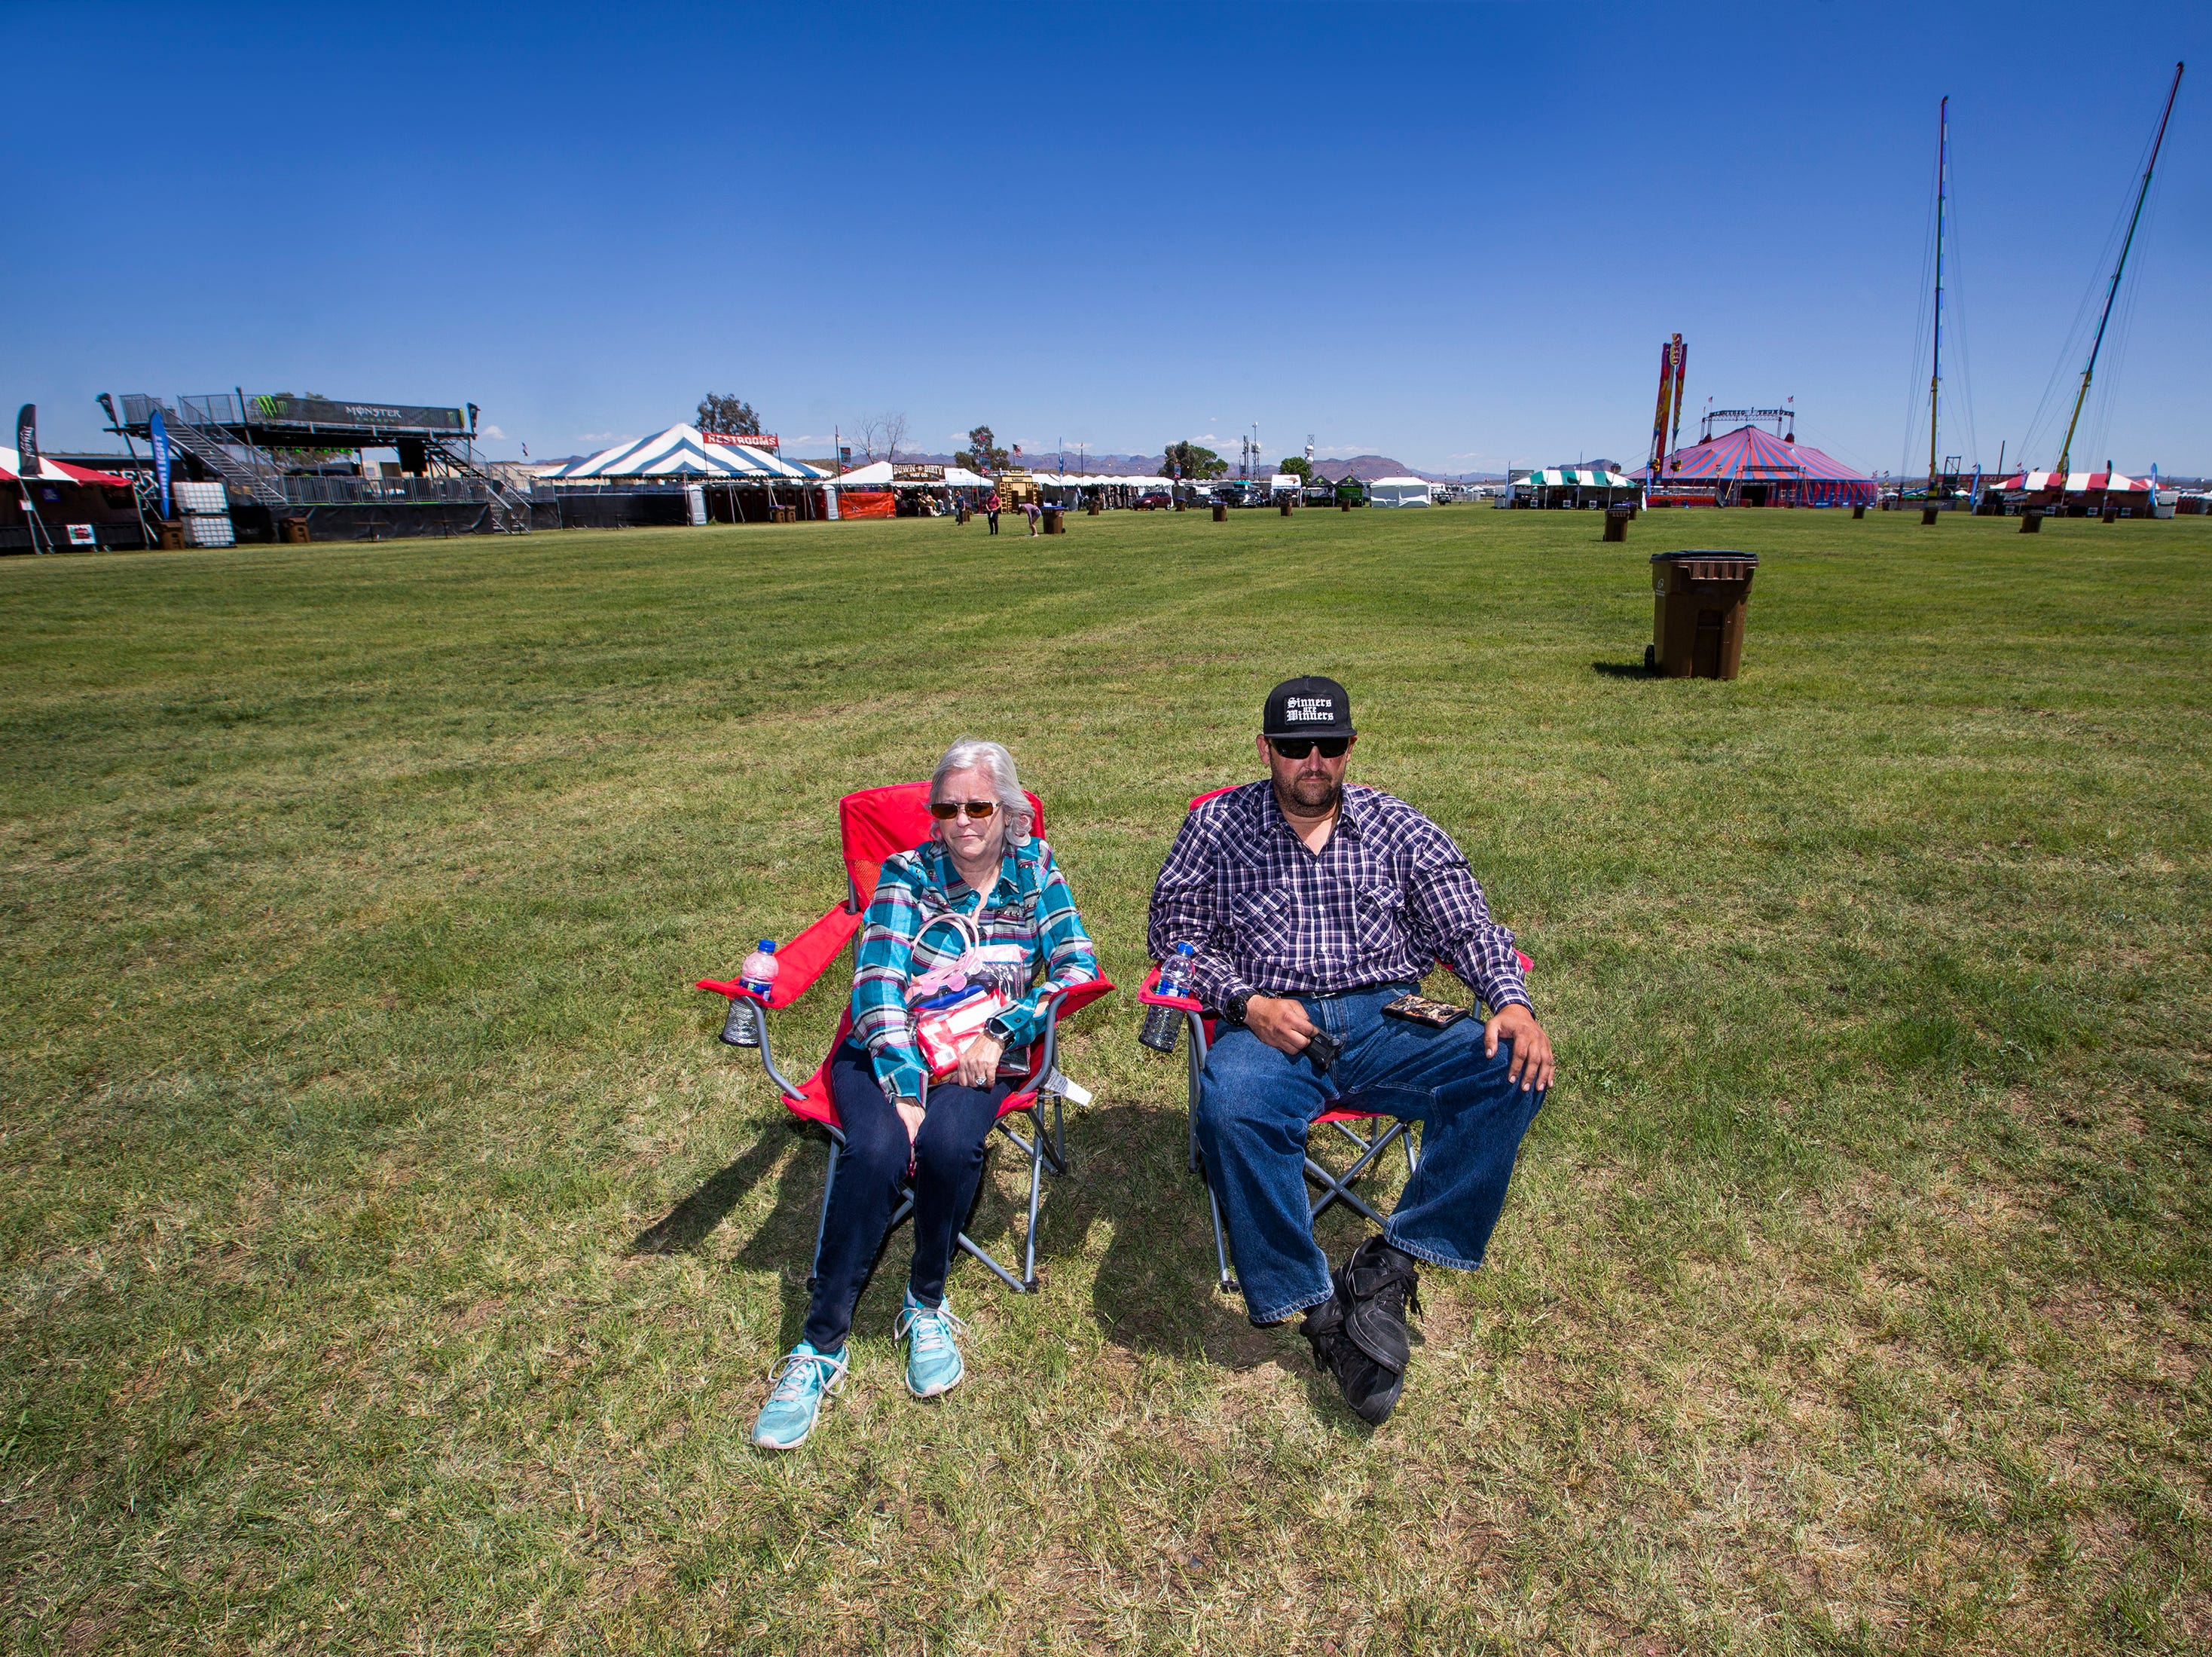 The first two people to claim their spots near the stage for the concert at Country Thunder Arizona 2019 Thursday morning were Marian Scott, 66, and her son, Kenneth Scott, Jr., 42, both of Tucson. They set up their chairs at 9:15 am.  This is their first time coming to the country music festival.